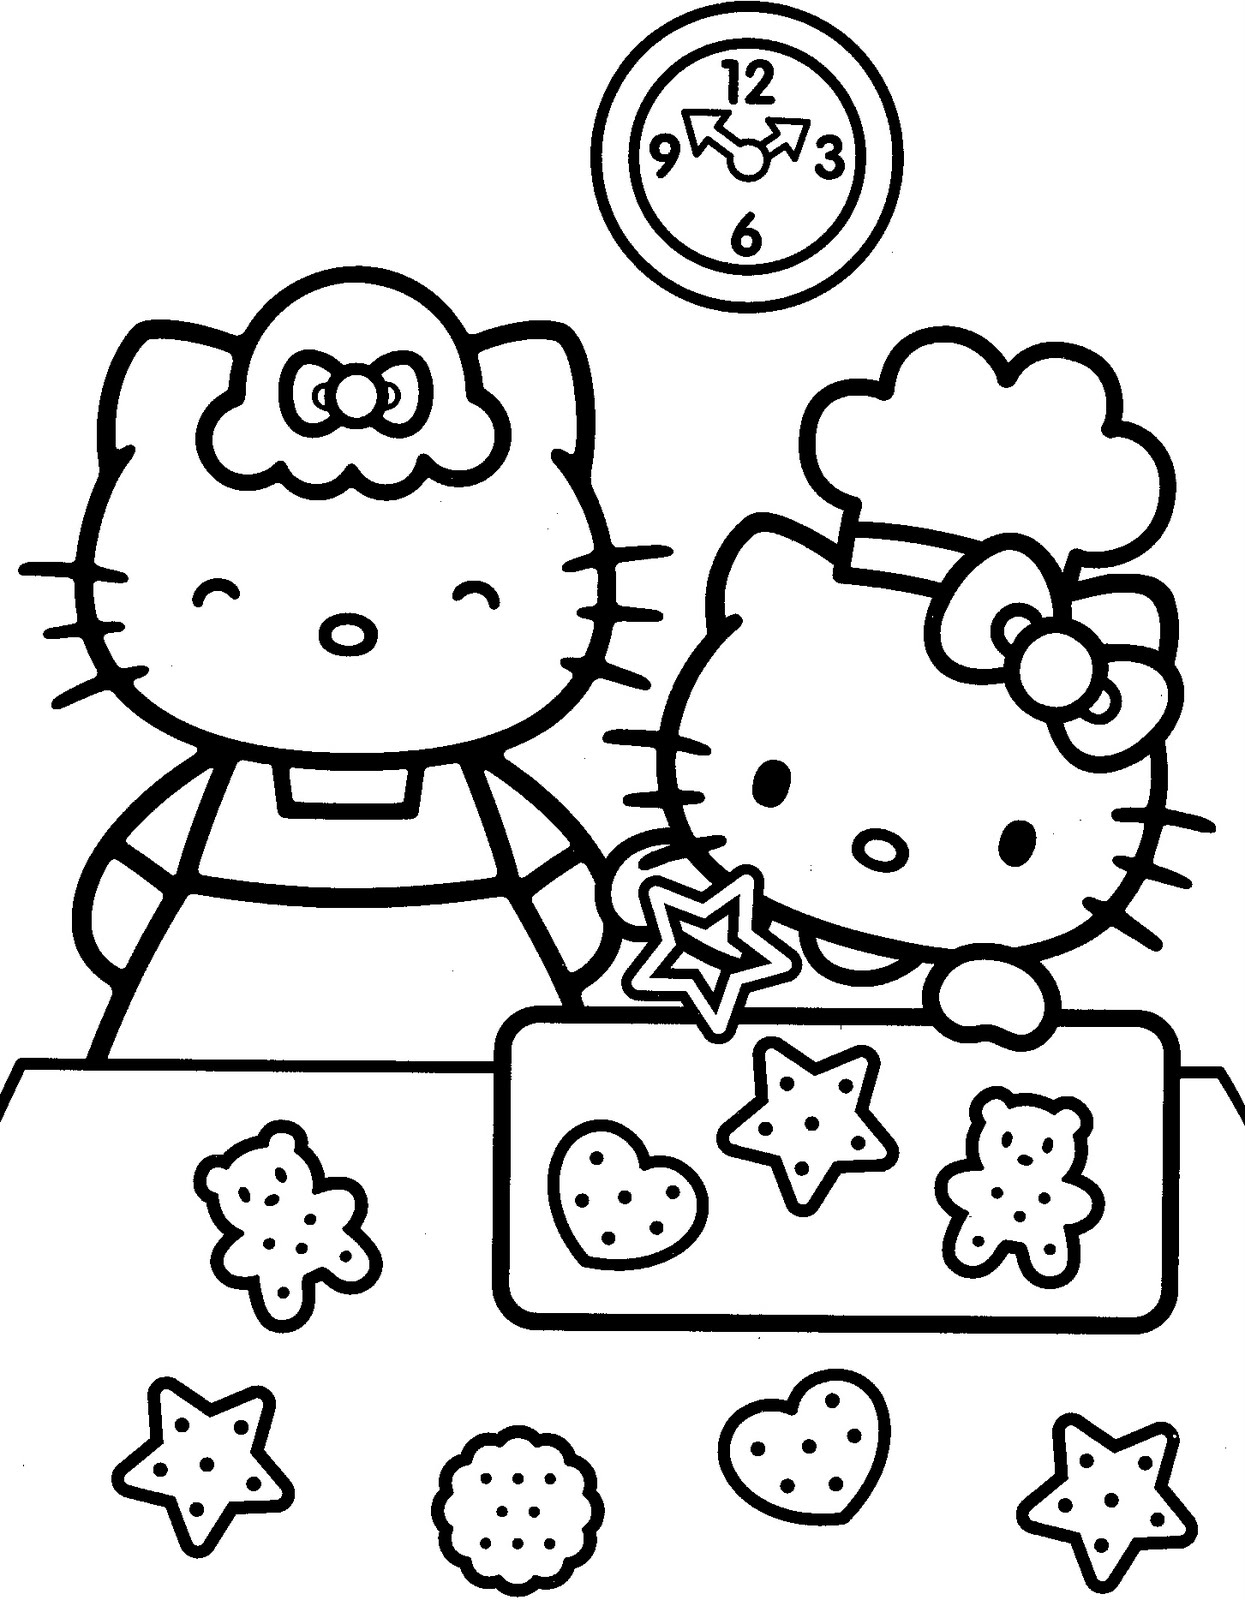 hello kitty coloring games hello kitty coloring best flash games hello kitty games coloring